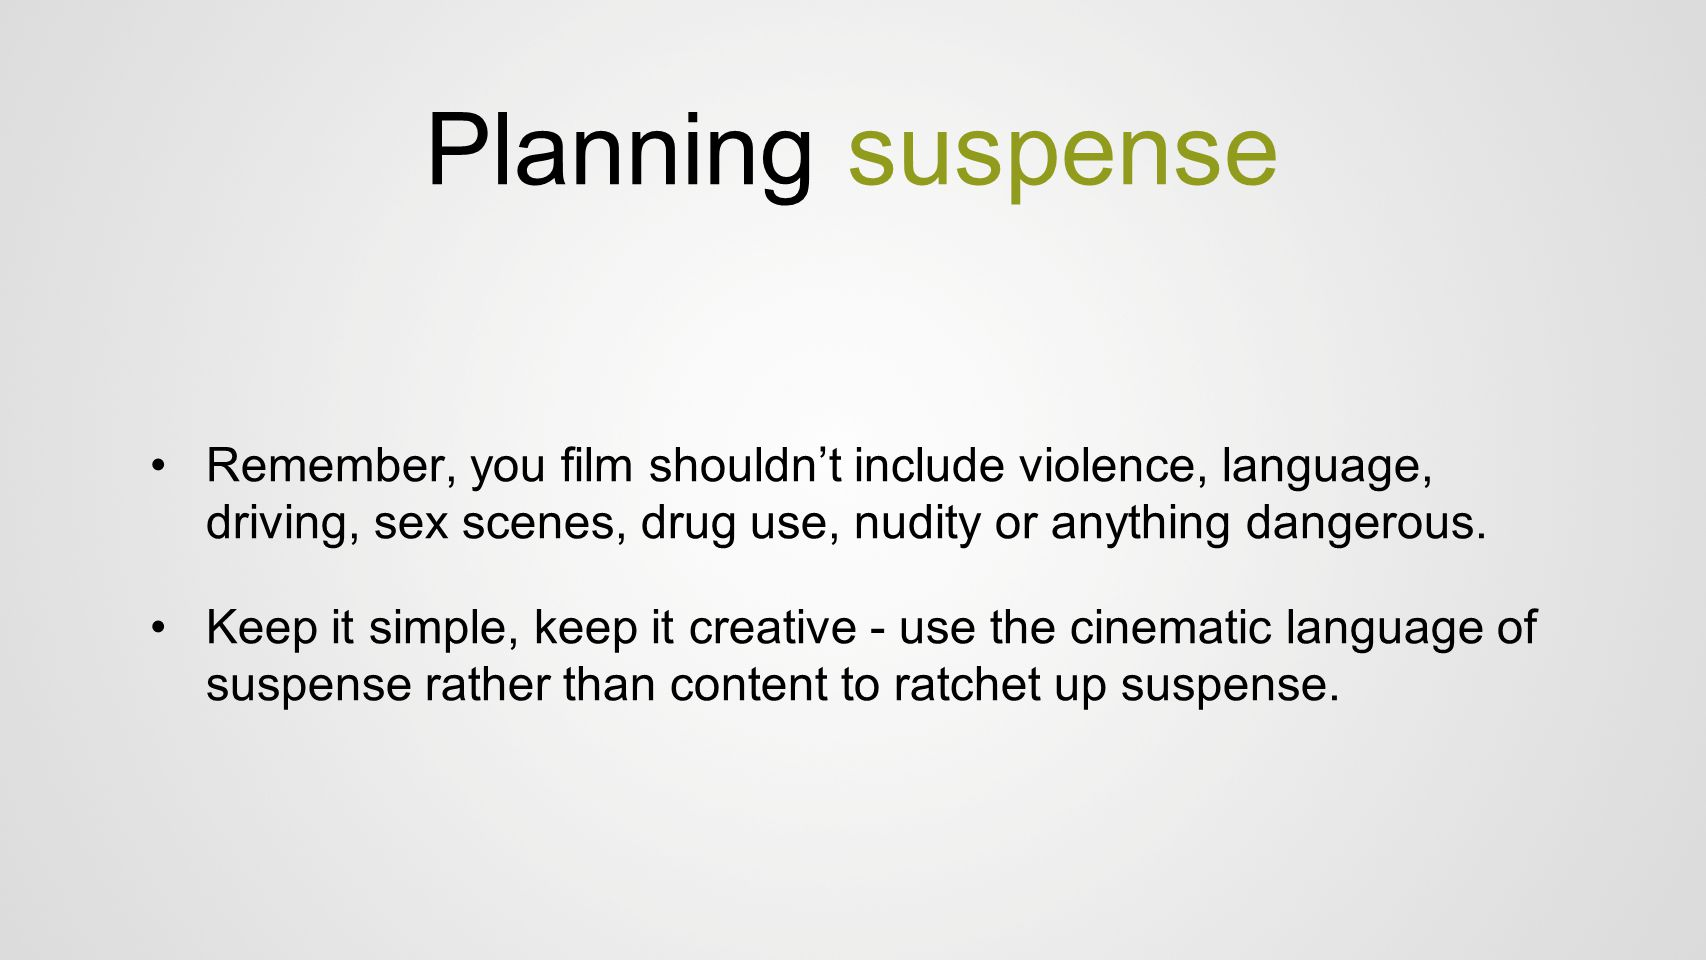 Planning suspense Remember, you film shouldn't include violence, language, driving, sex scenes, drug use, nudity or anything dangerous. Keep it simple